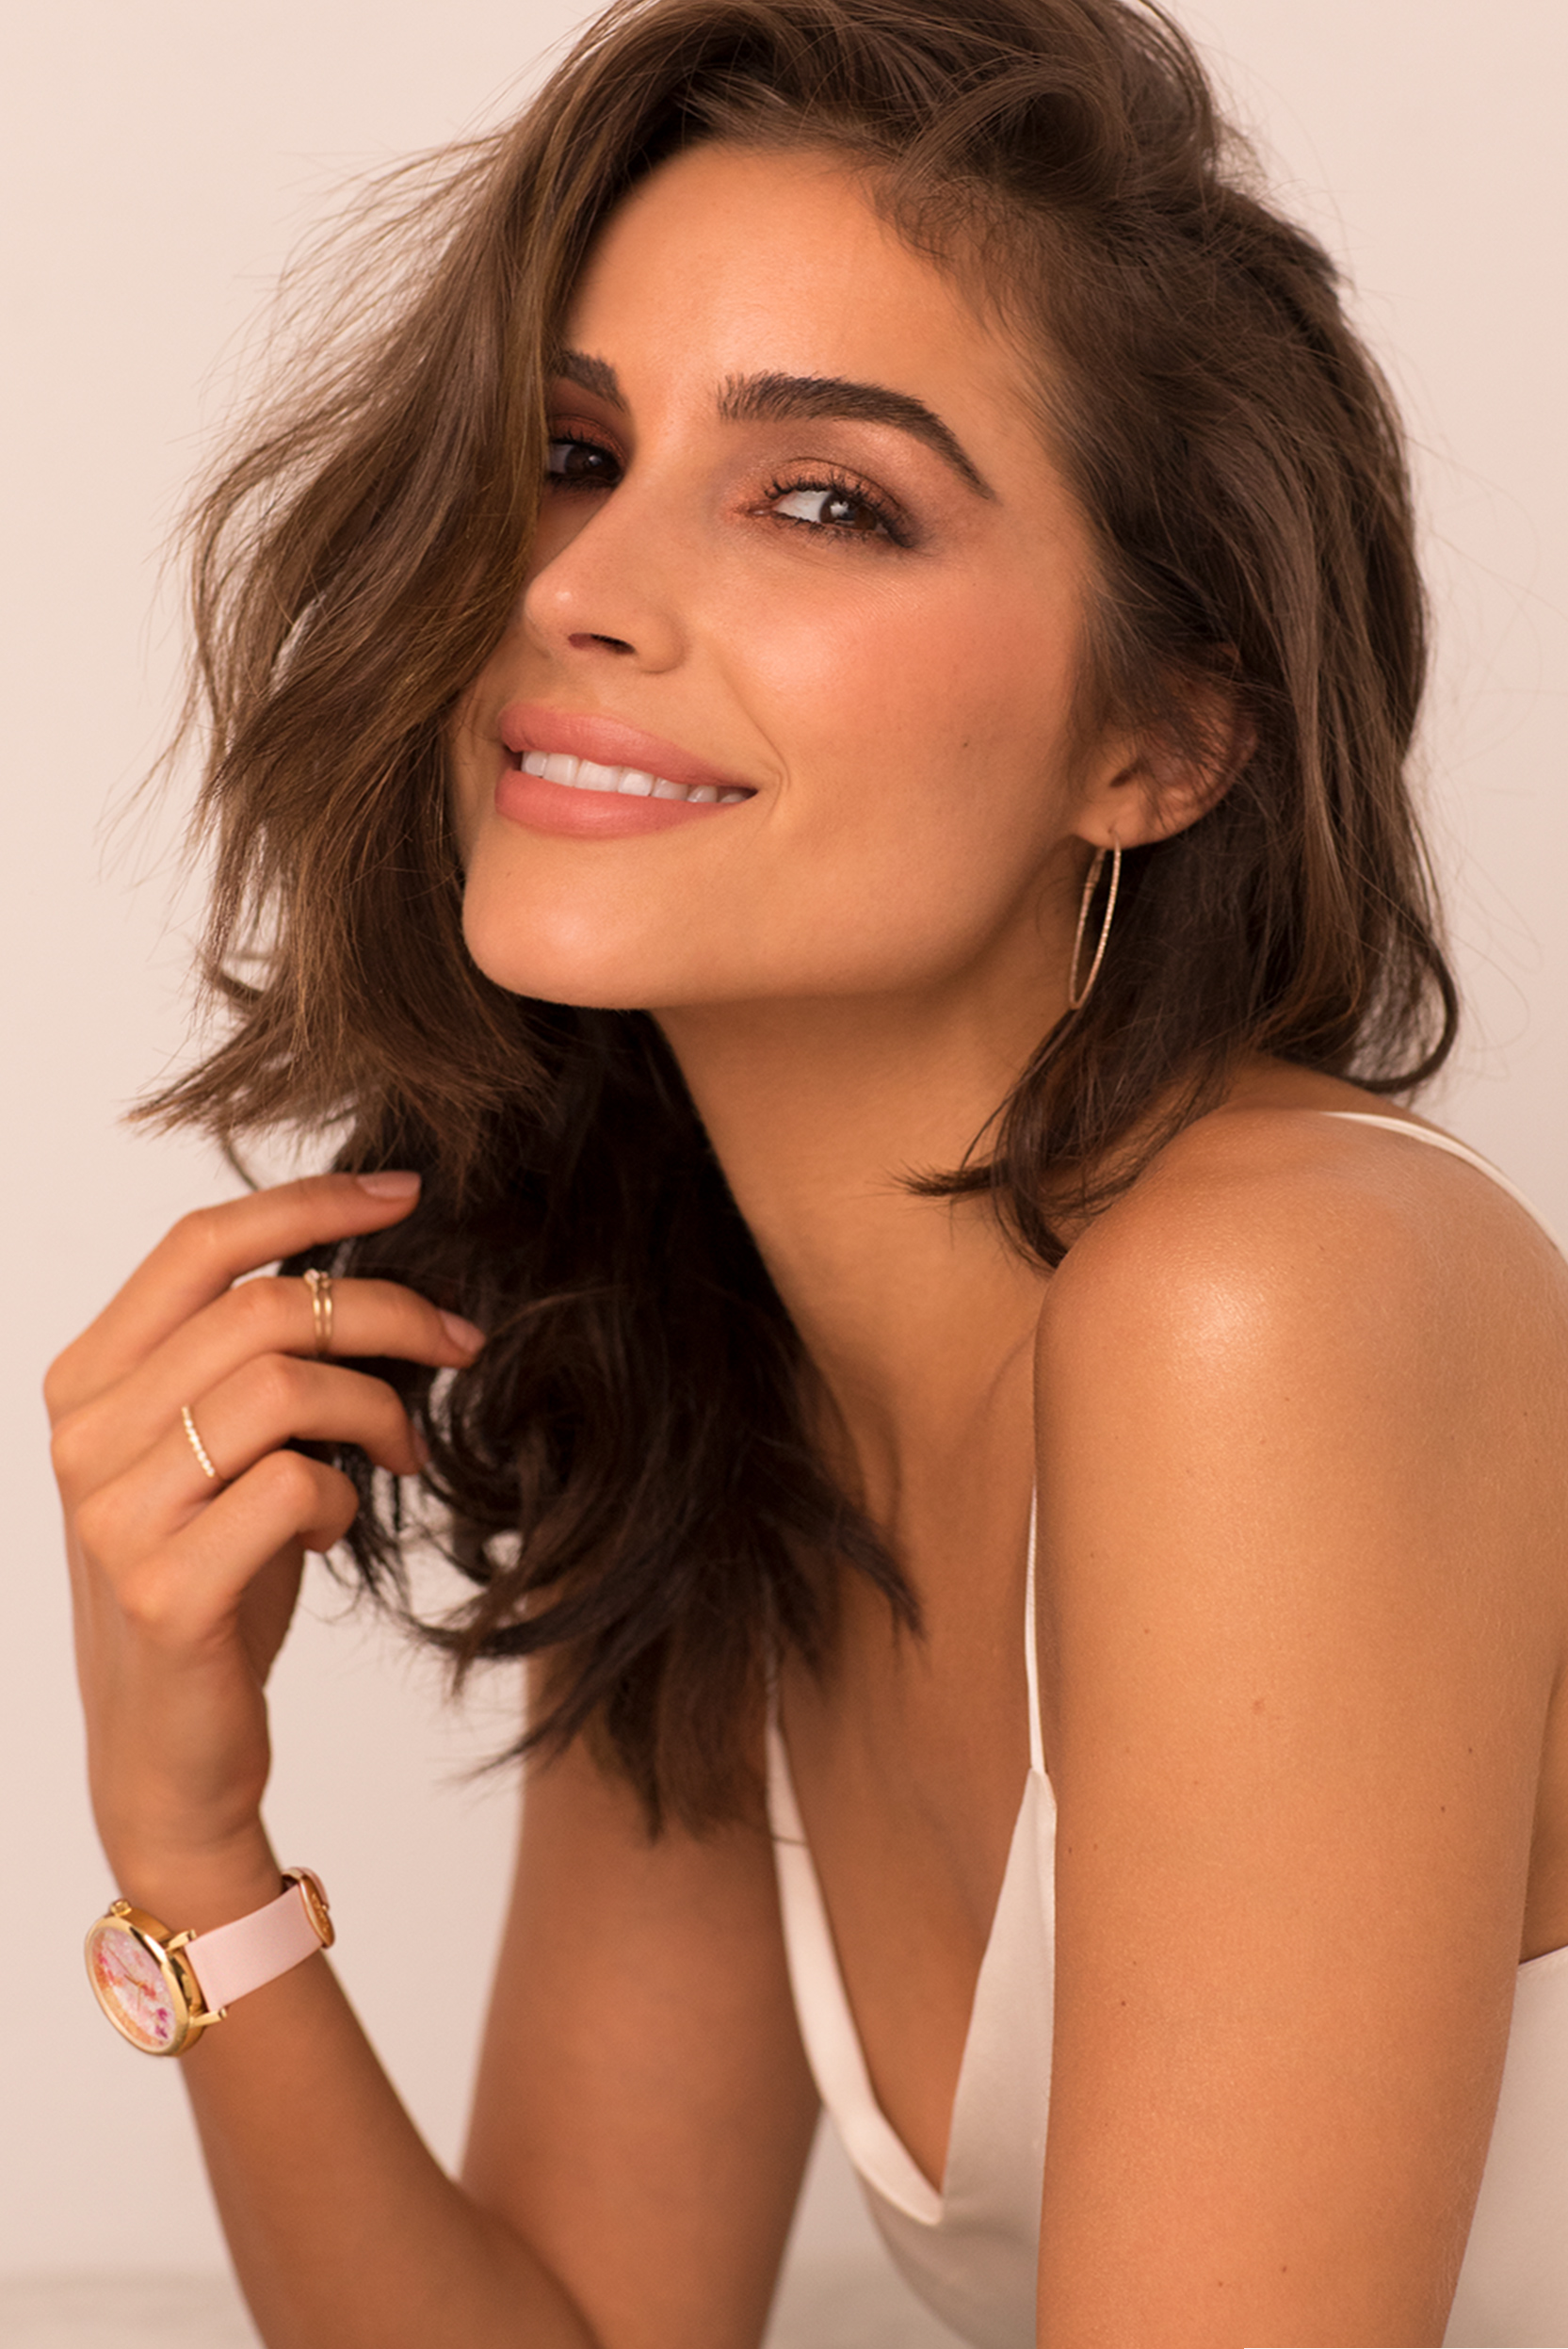 Olivia Culpo with her stylish Crystal Bloom watch